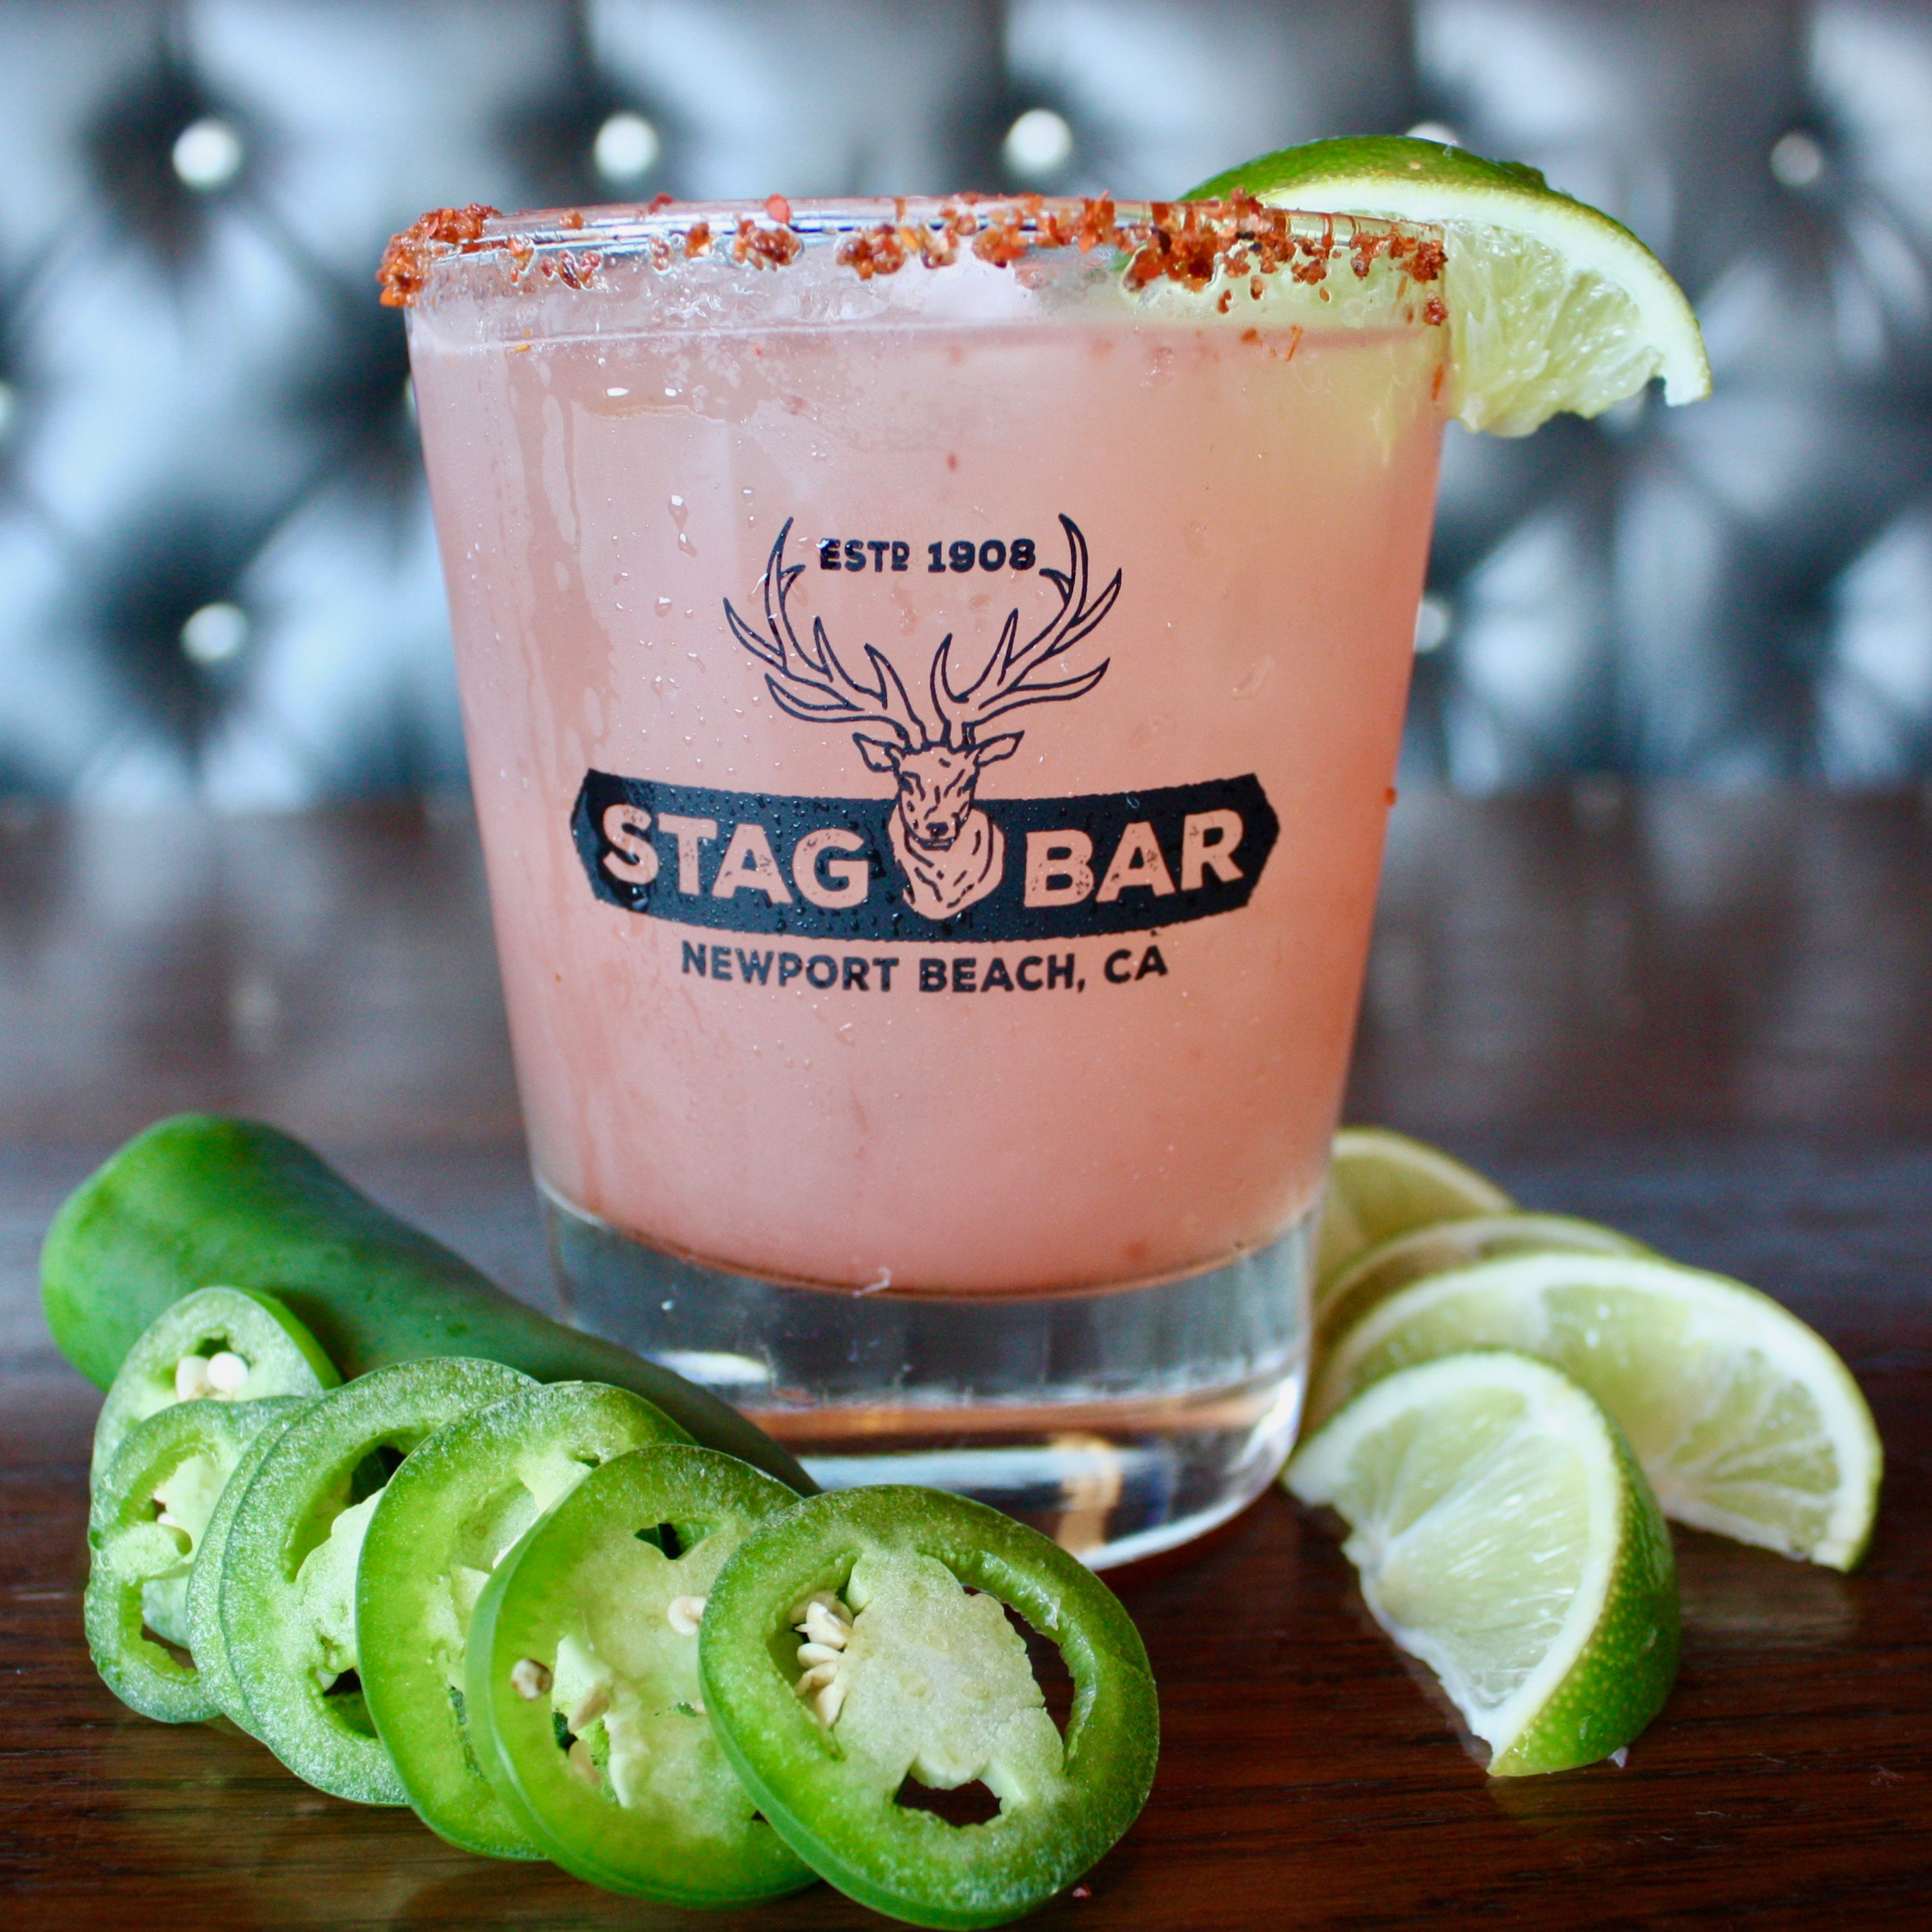 Try Stag Bar's Watermelon Jalapeño Margarita